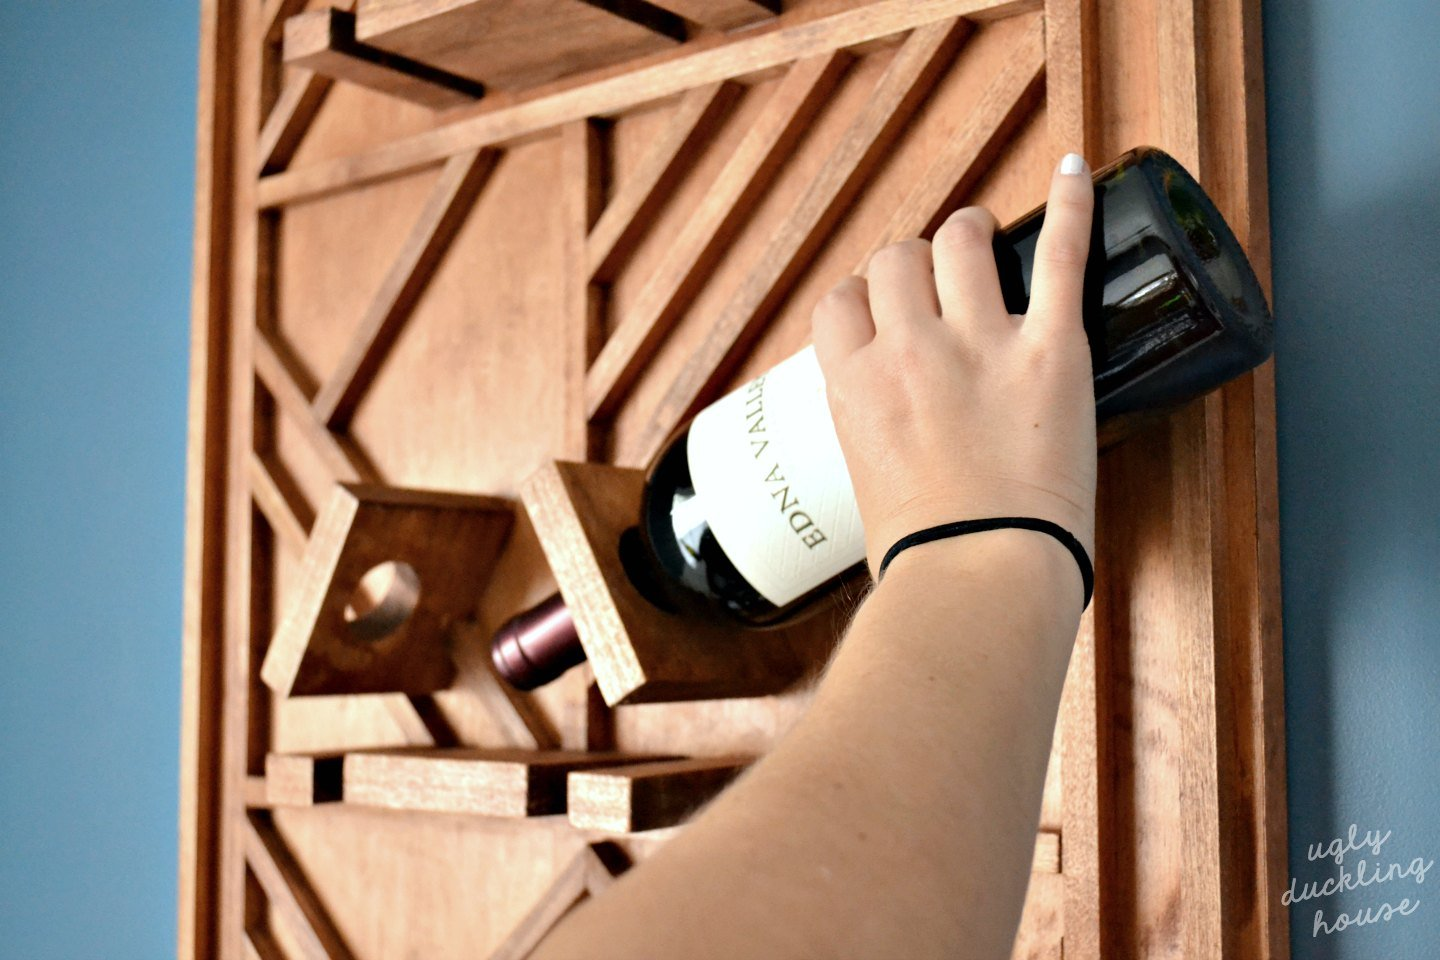 load wine rack with your favorite Edna Valley Vineyard wine